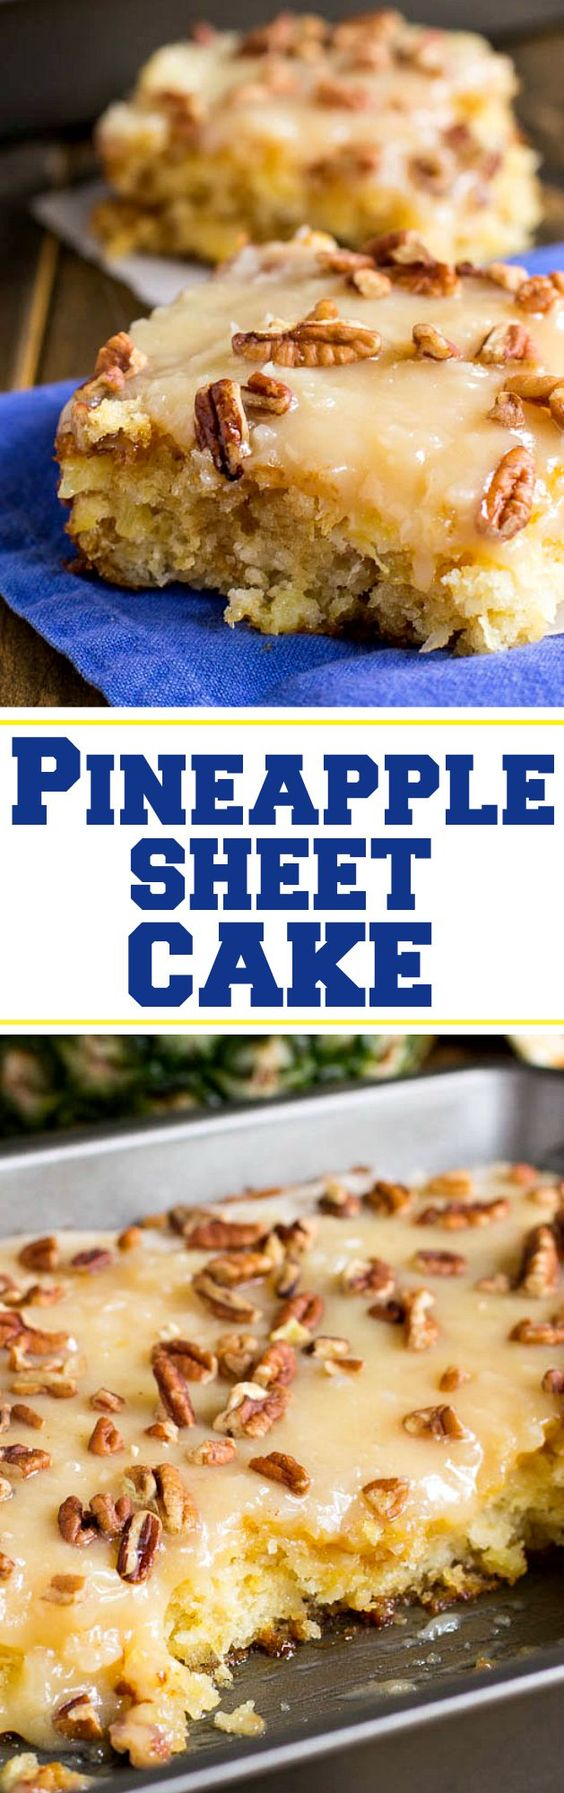 Pineapple Sheet Cake Dessert Recipe via Spicy Southern Kitchen ~ flavored and moistened with crushed pineapple and topped with a sweet icing laced with shredded coconut, and sprinkled with pecans is a wonderful dessert to make to feed a crowd. The Best EASY Sheet Cakes Recipes - Simple and Quick Party Crowds Desserts for Holidays, Special Occasions and Family Celebrations